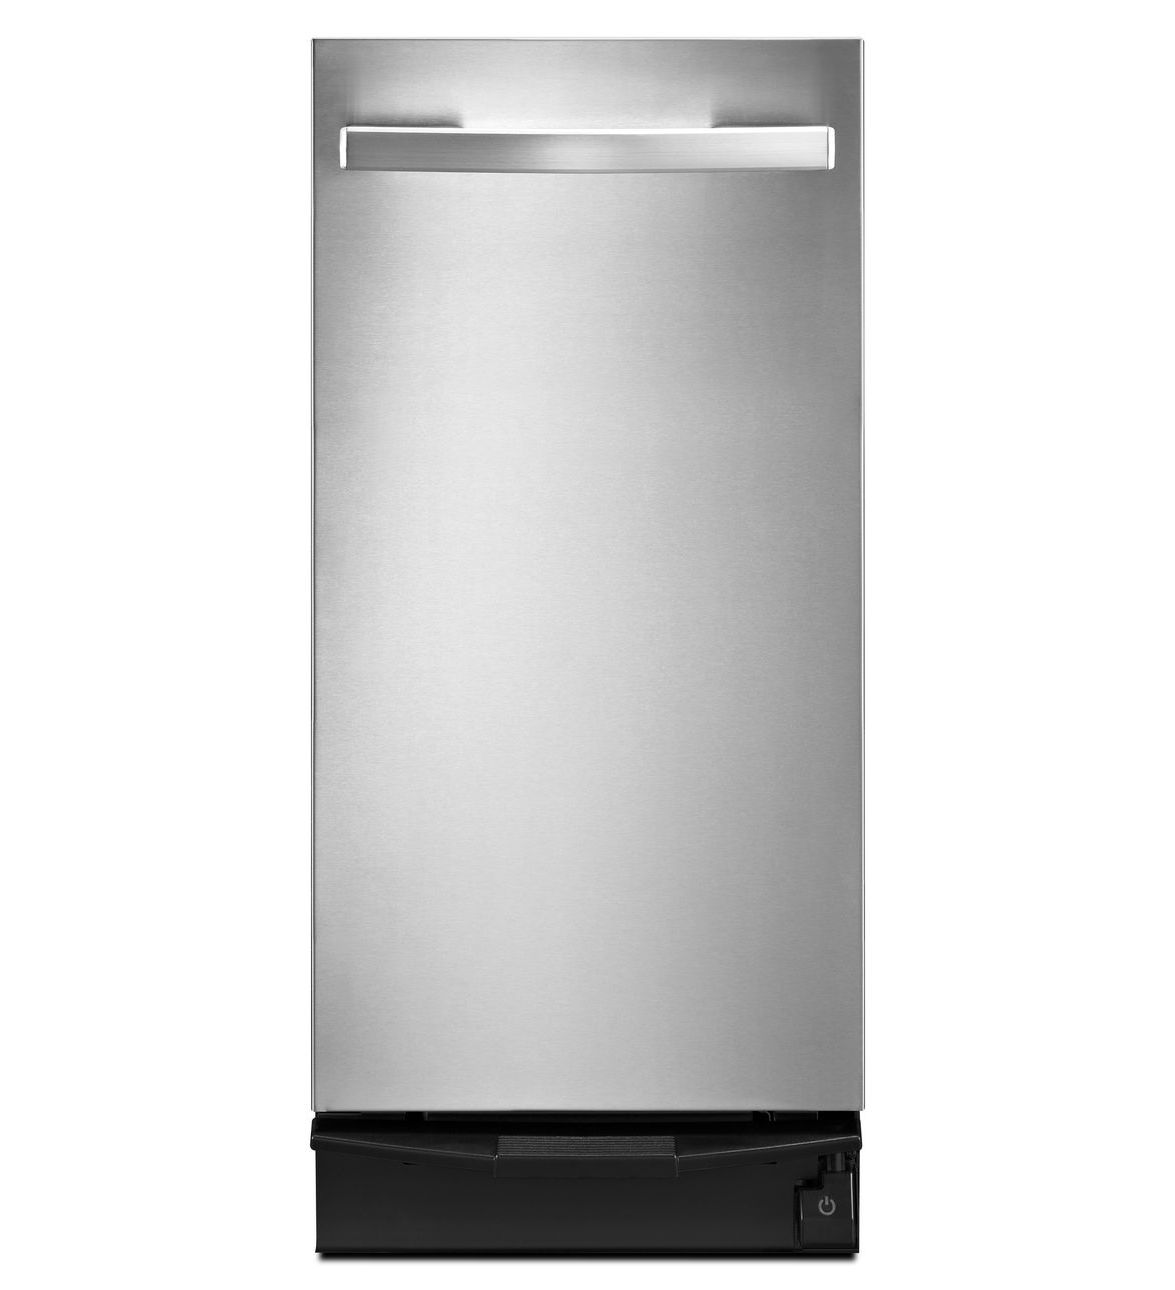 Whirlpool Trash Compactor TU950QPXS - Reviews, Prices, Deals ...